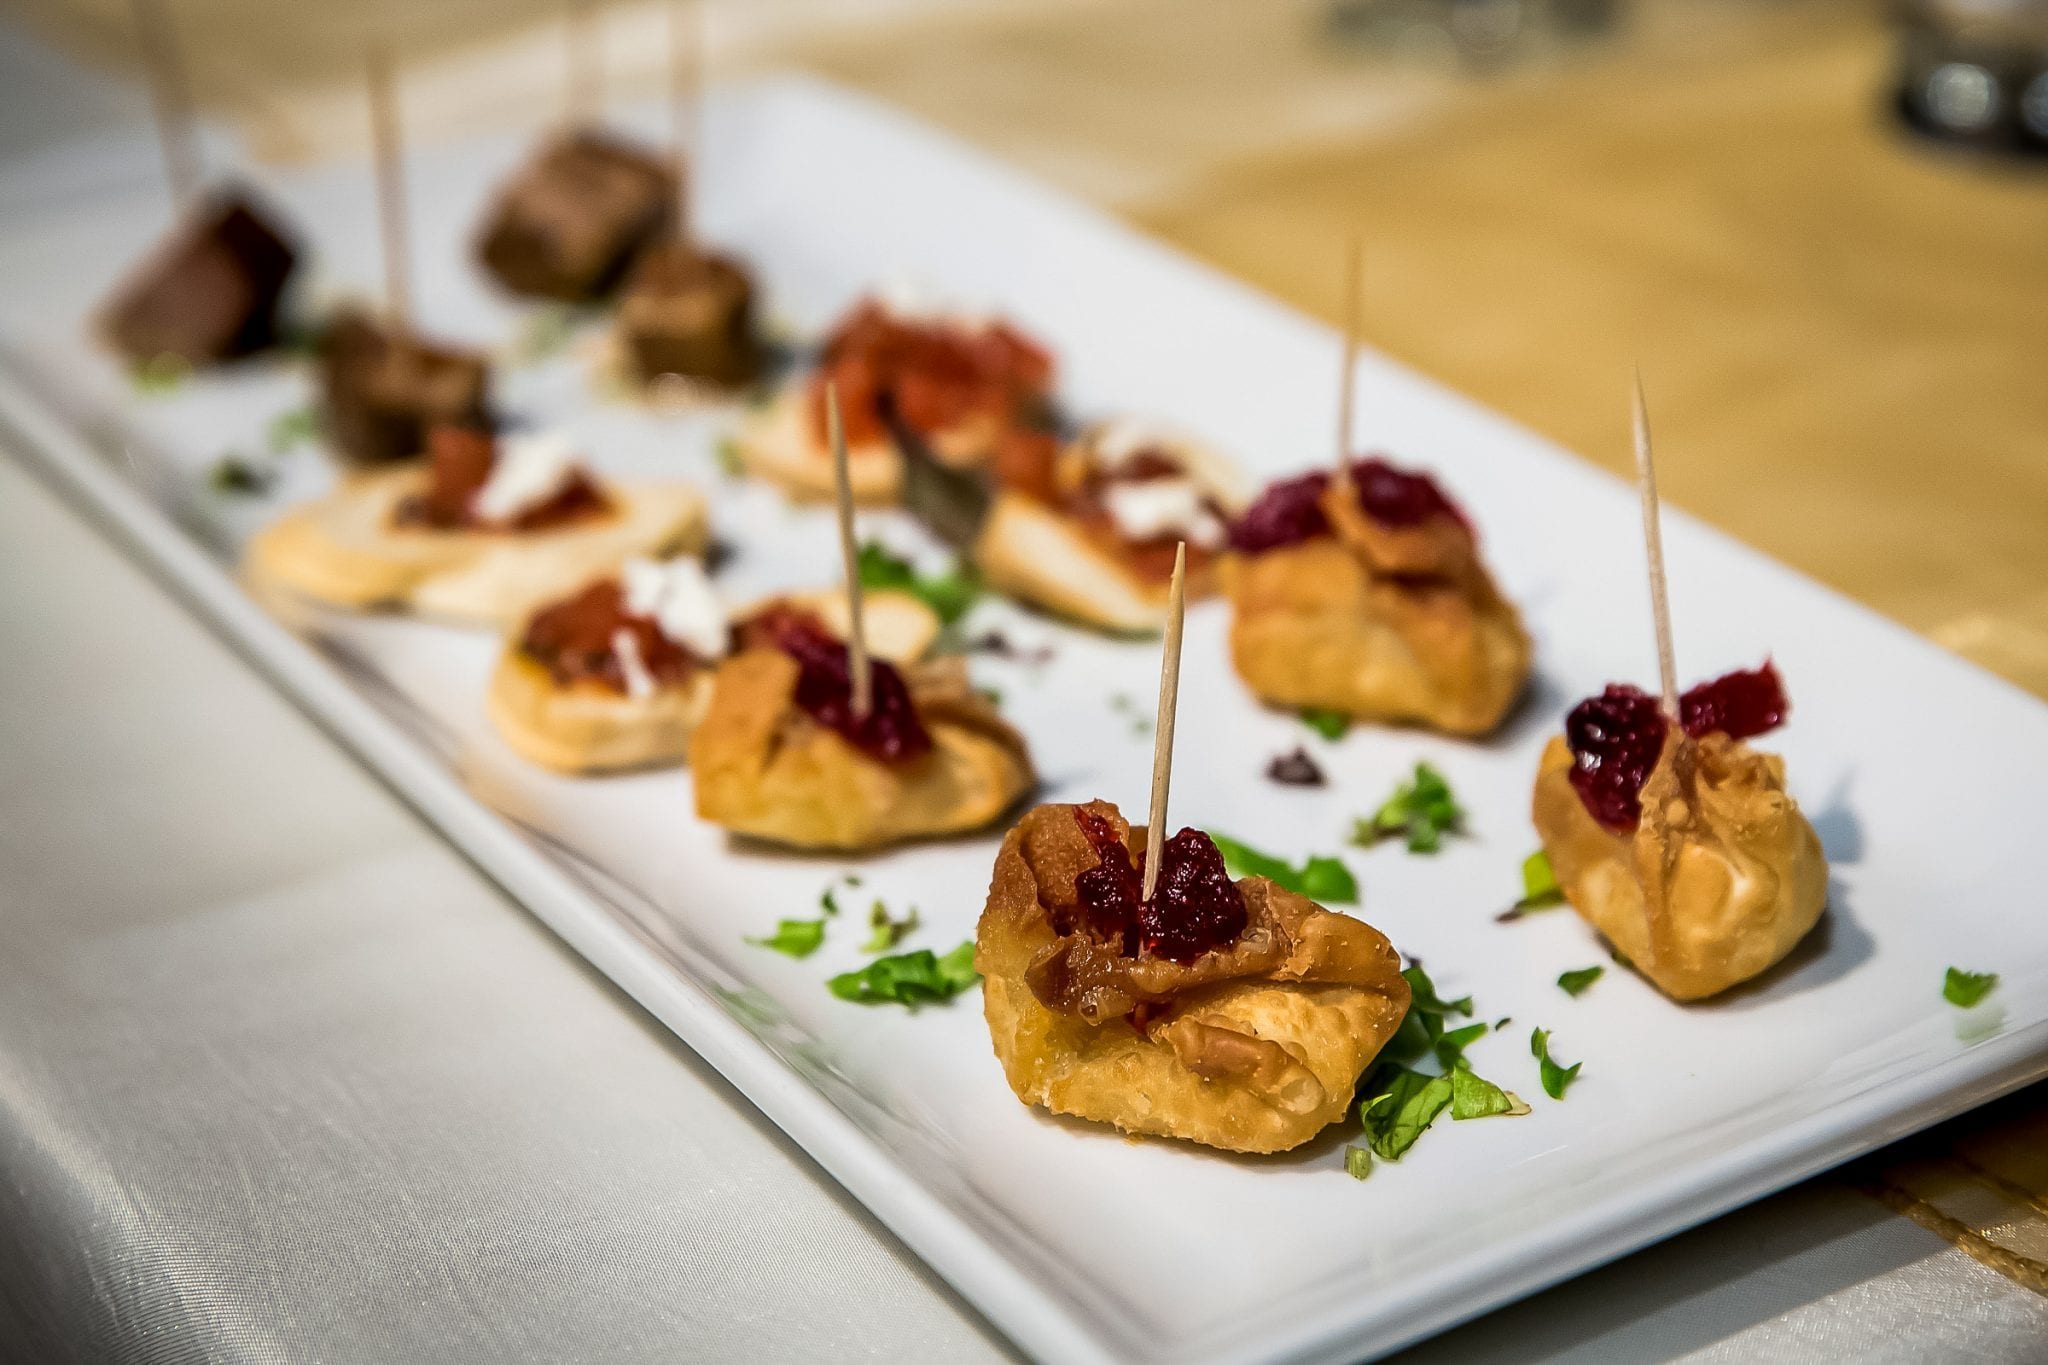 Appetizers - baked brie - Photo credit Kim Payant Photography